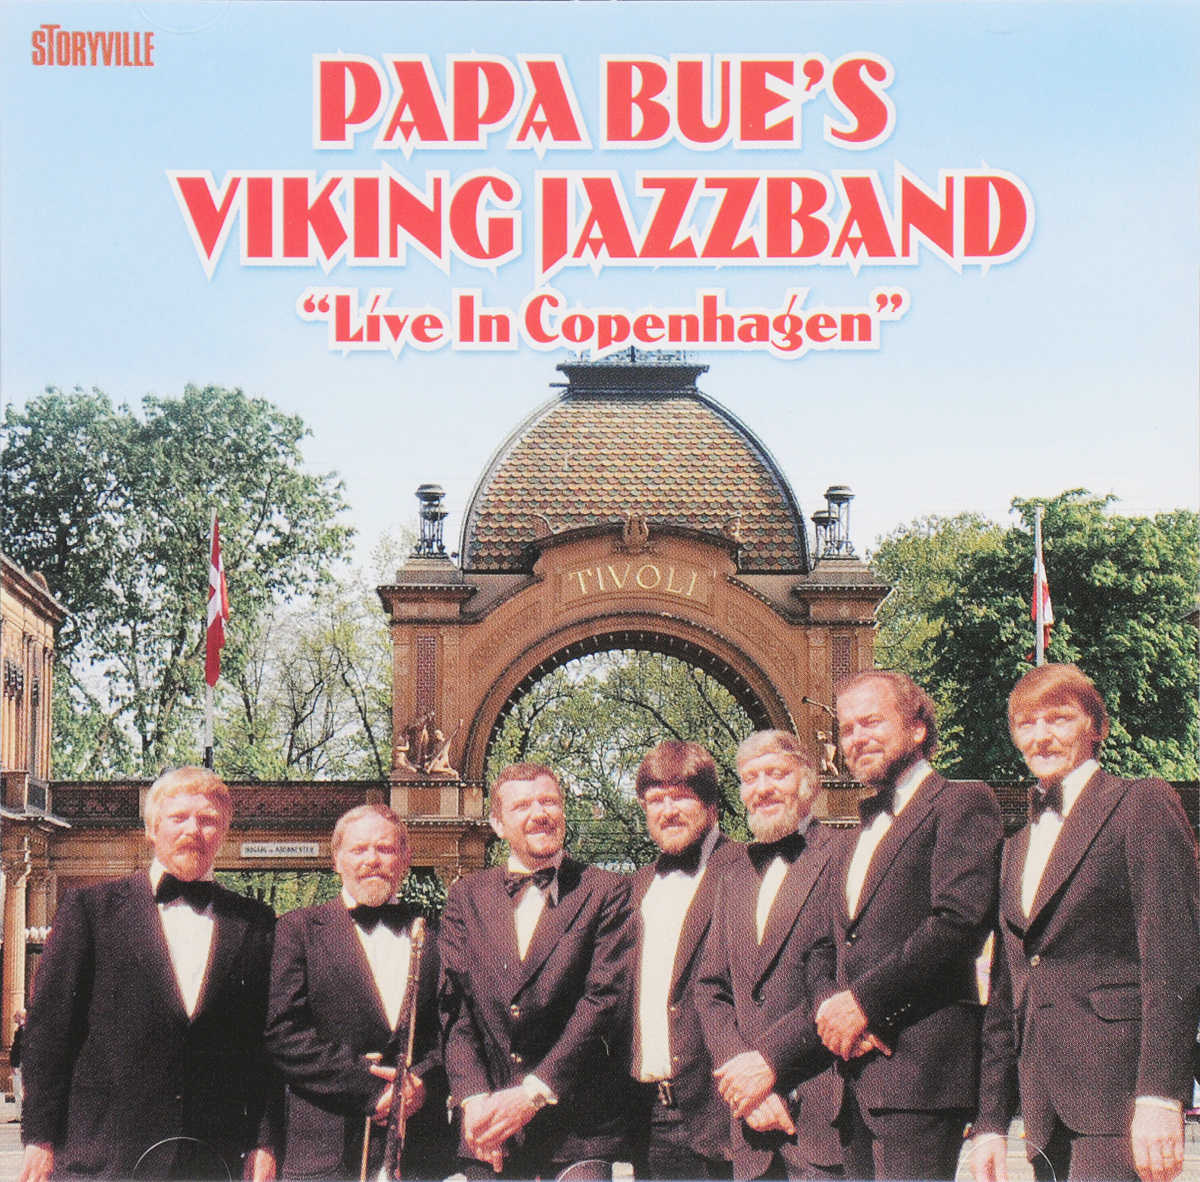 Papa Bue's Viking Jazz Band Papa Bue's Viking Jazzband. Live In Copenhagen viking кроссовки cascade ii gtx viking для девочки